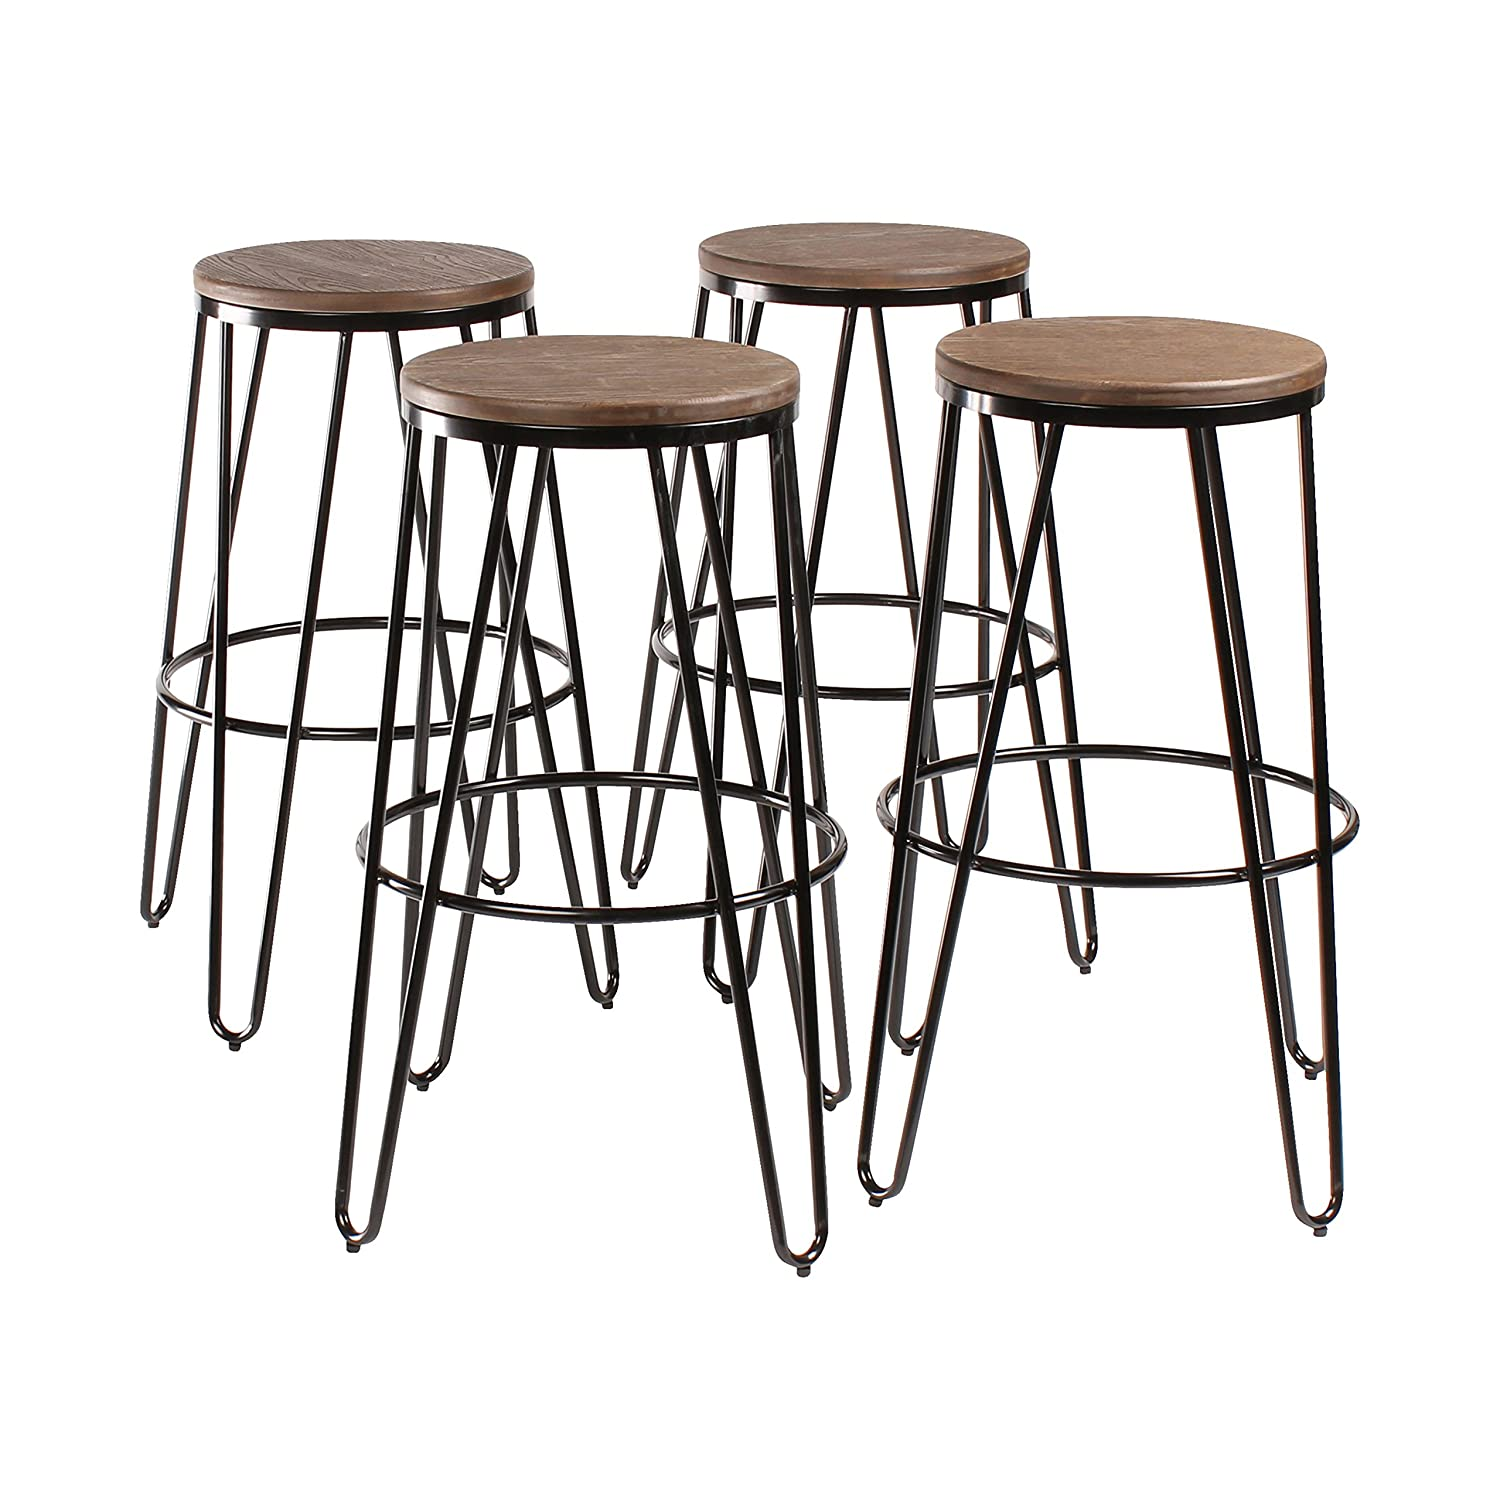 Admirable Kate And Laurel Tully Backless Modern Wood And Metal 30 Bar Stools Set Of 4 Black With Wood Seat Cjindustries Chair Design For Home Cjindustriesco